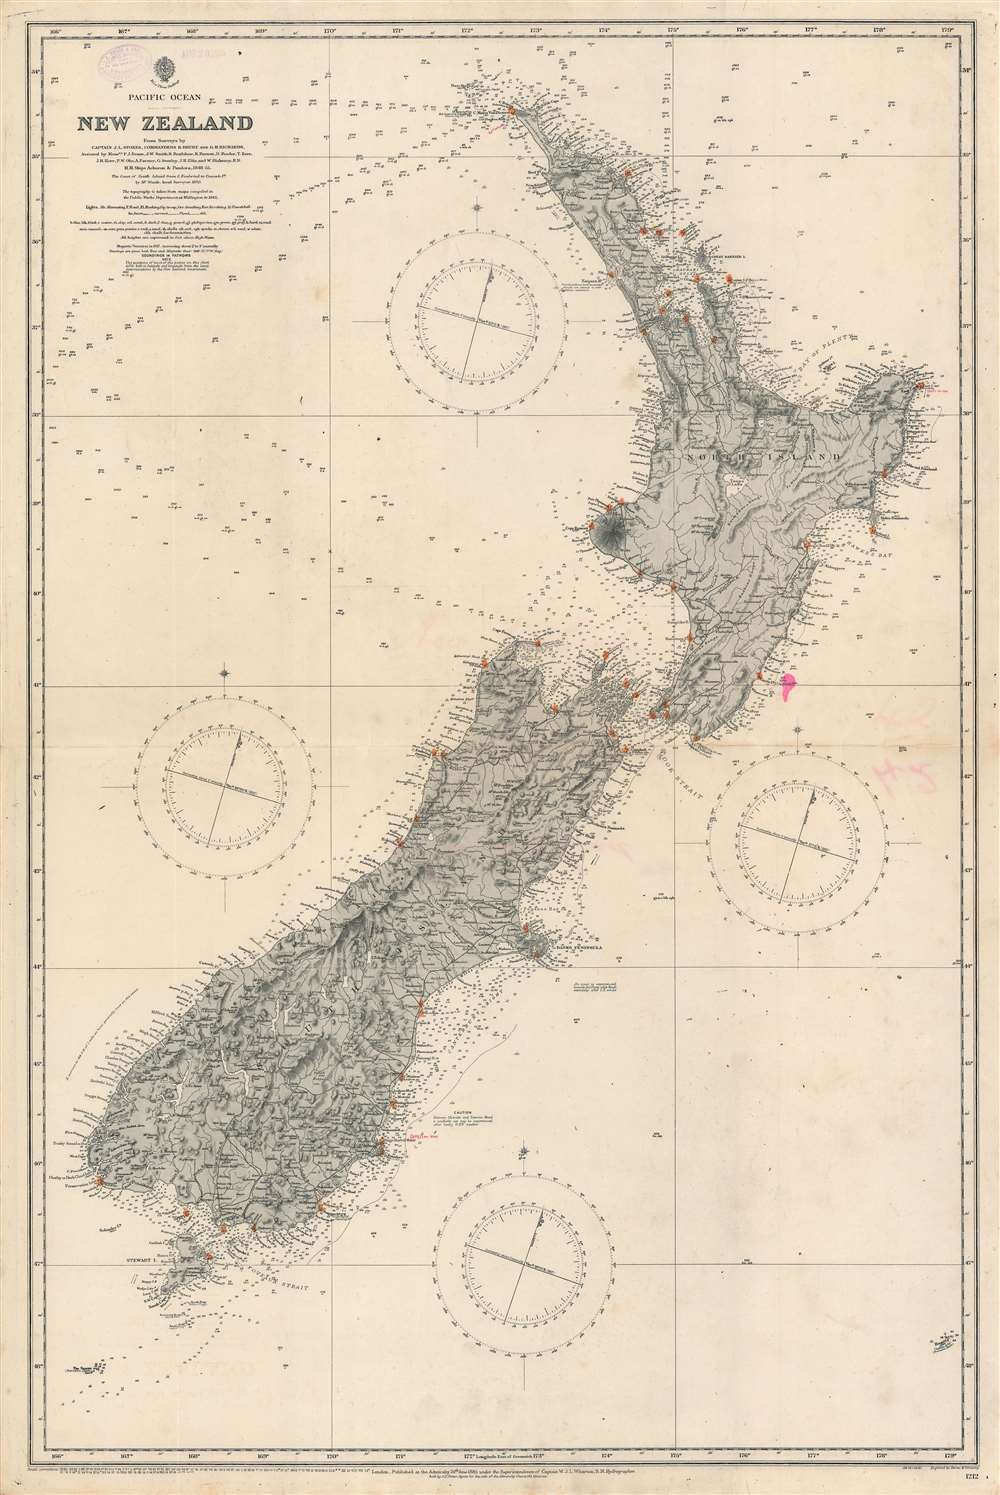 Pacific Ocean. Nea Zealand From Surveys by Captain J. L. Stokes, Commanders B. Drury and G. H. Richards... - Main View